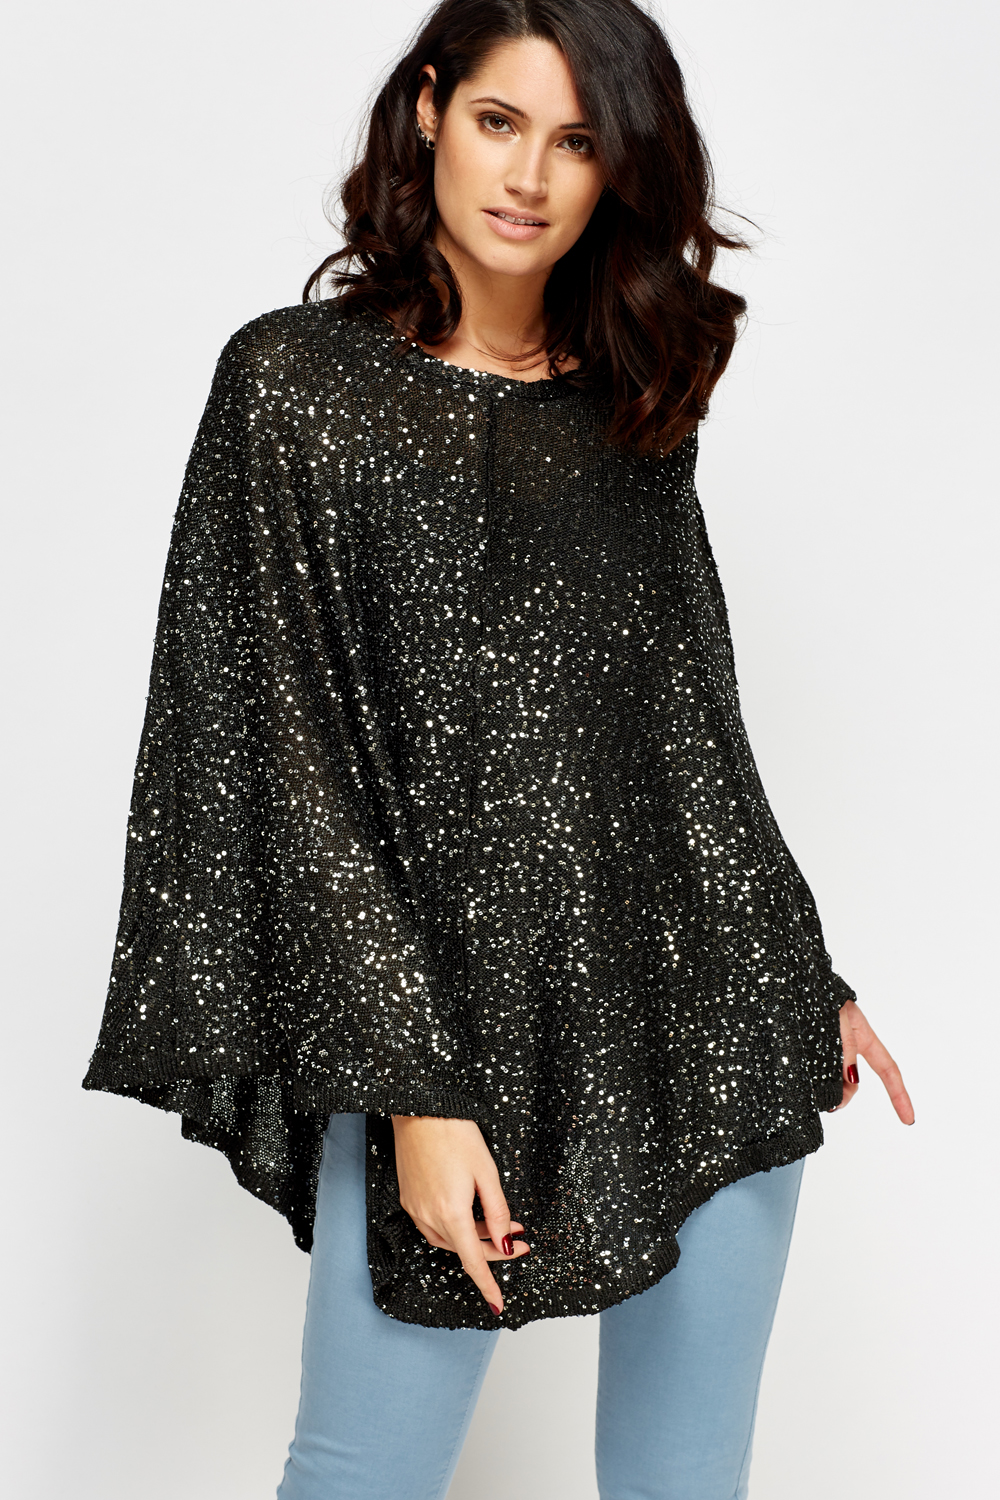 7e225d5e Sequin Embellished Knit Poncho - Just £5